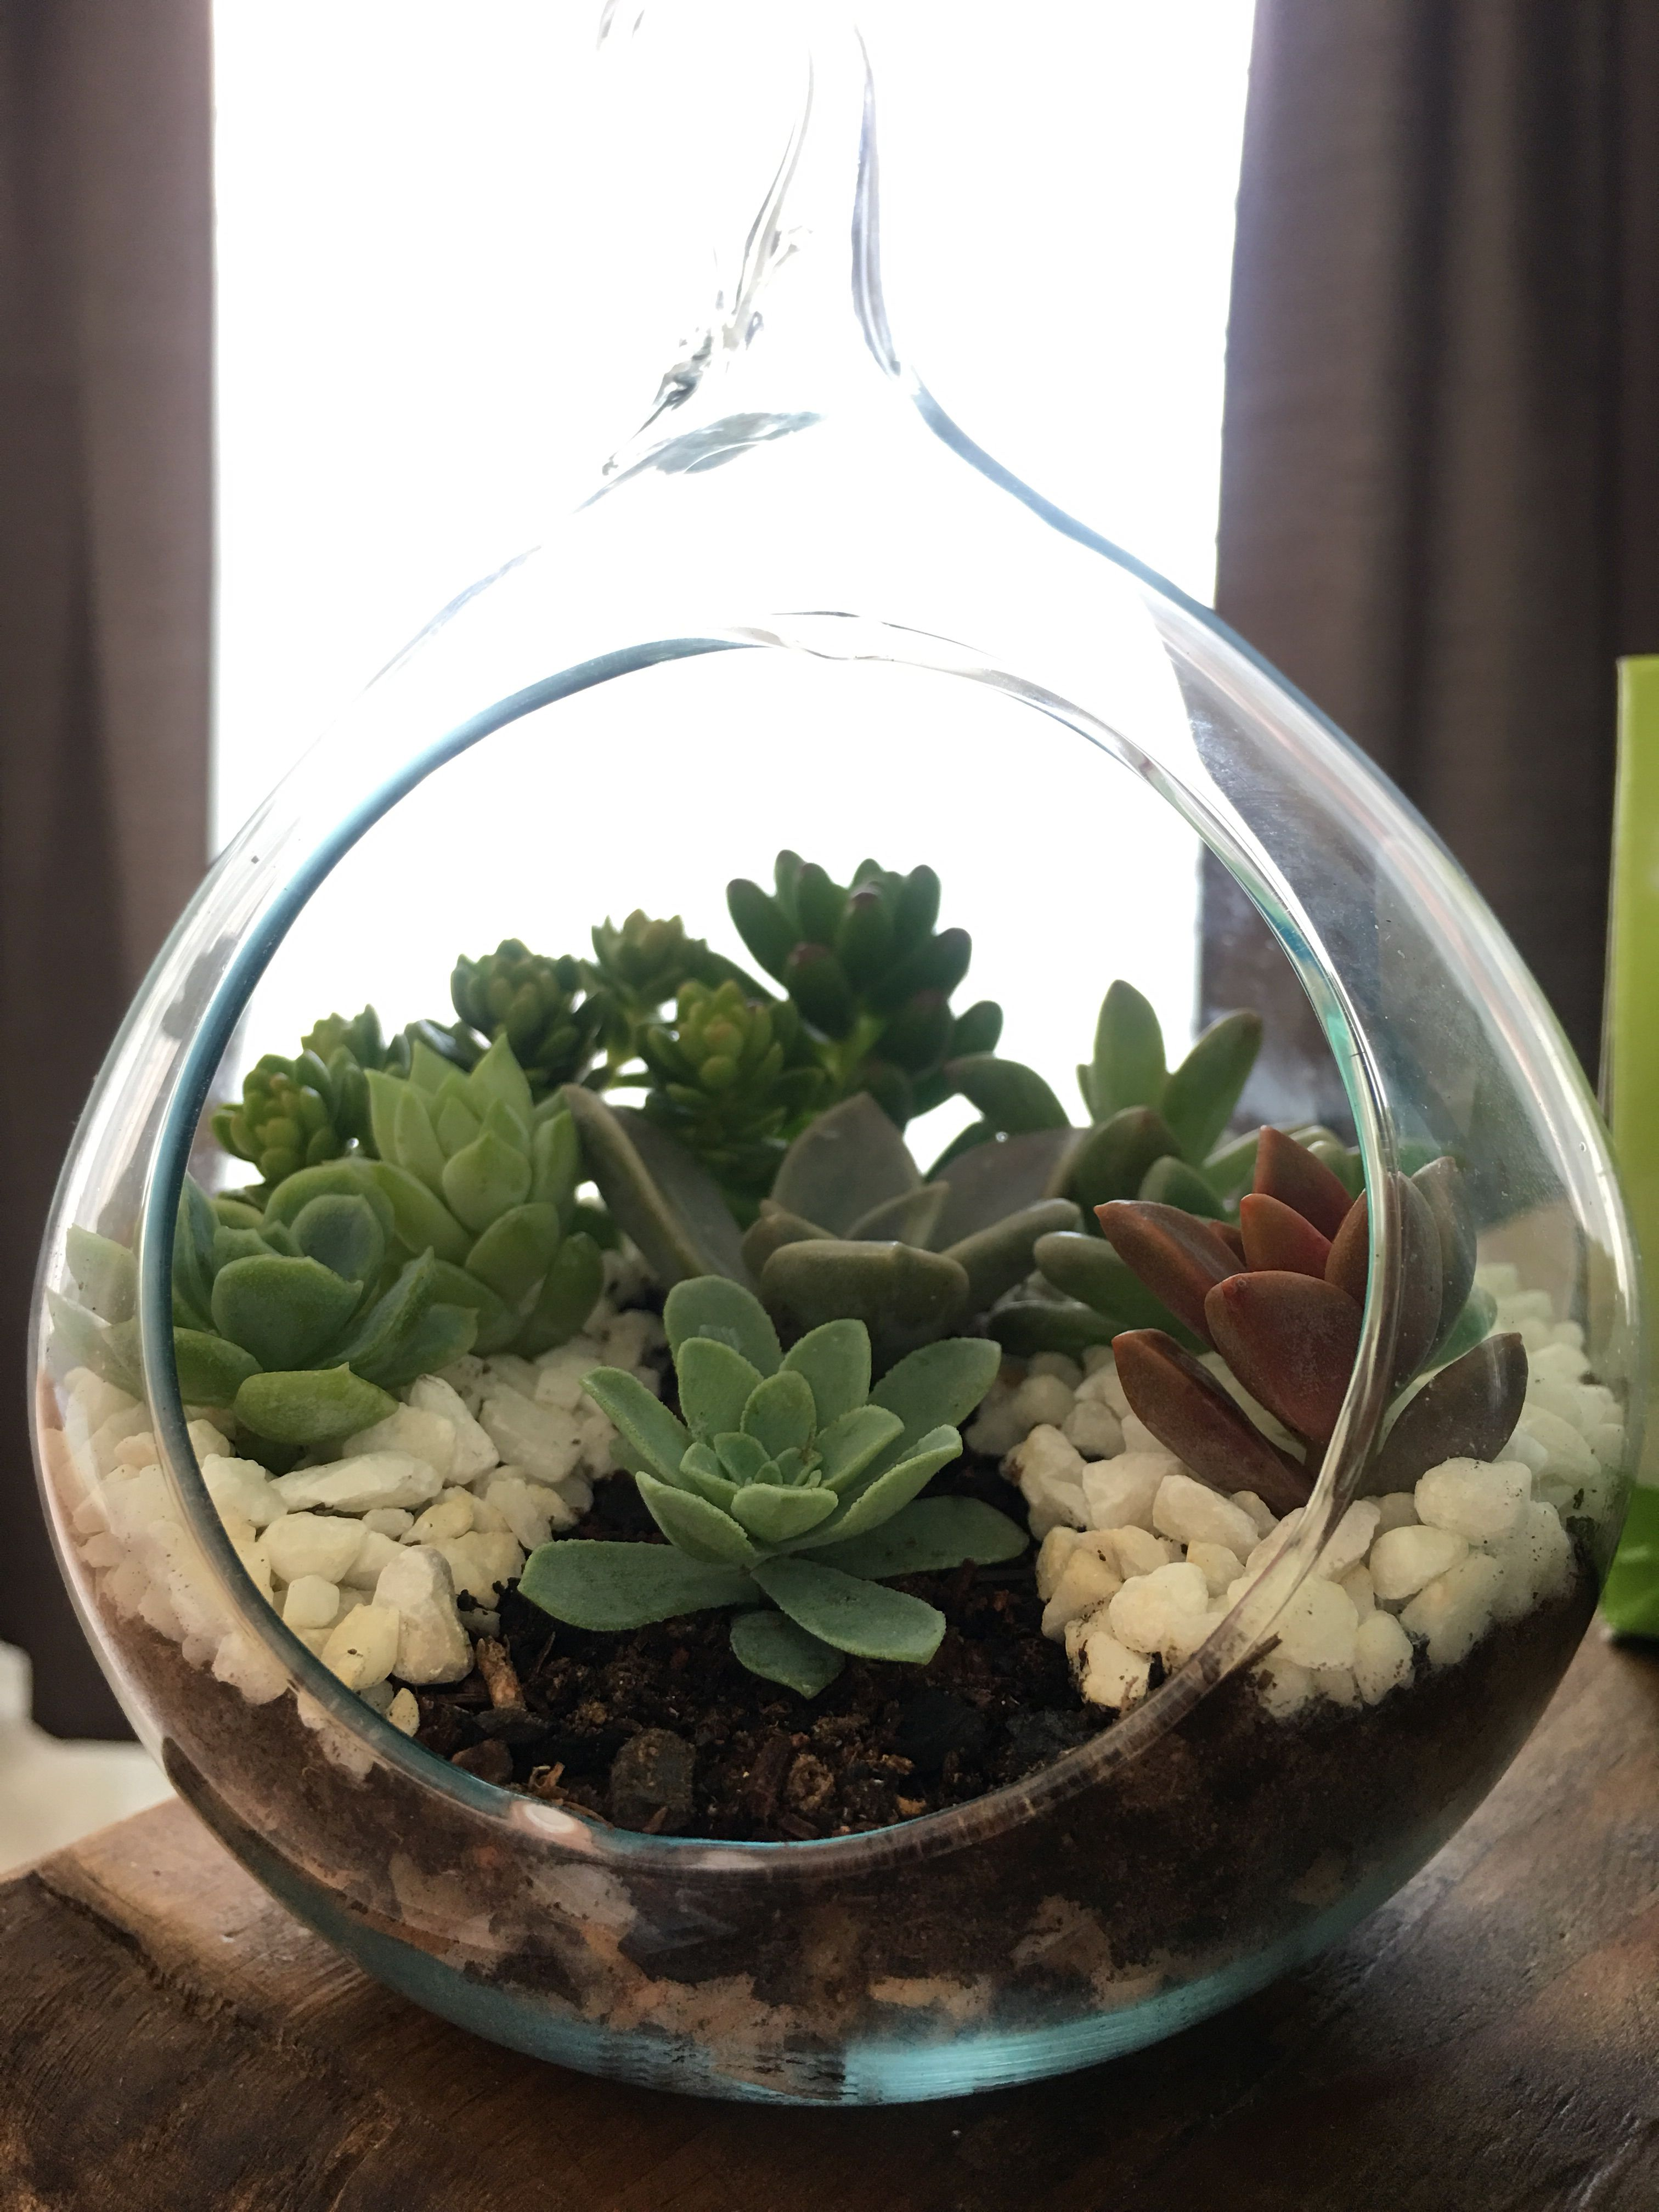 Pin by nicoletta fei on bomboniere pinterest terrarium plants